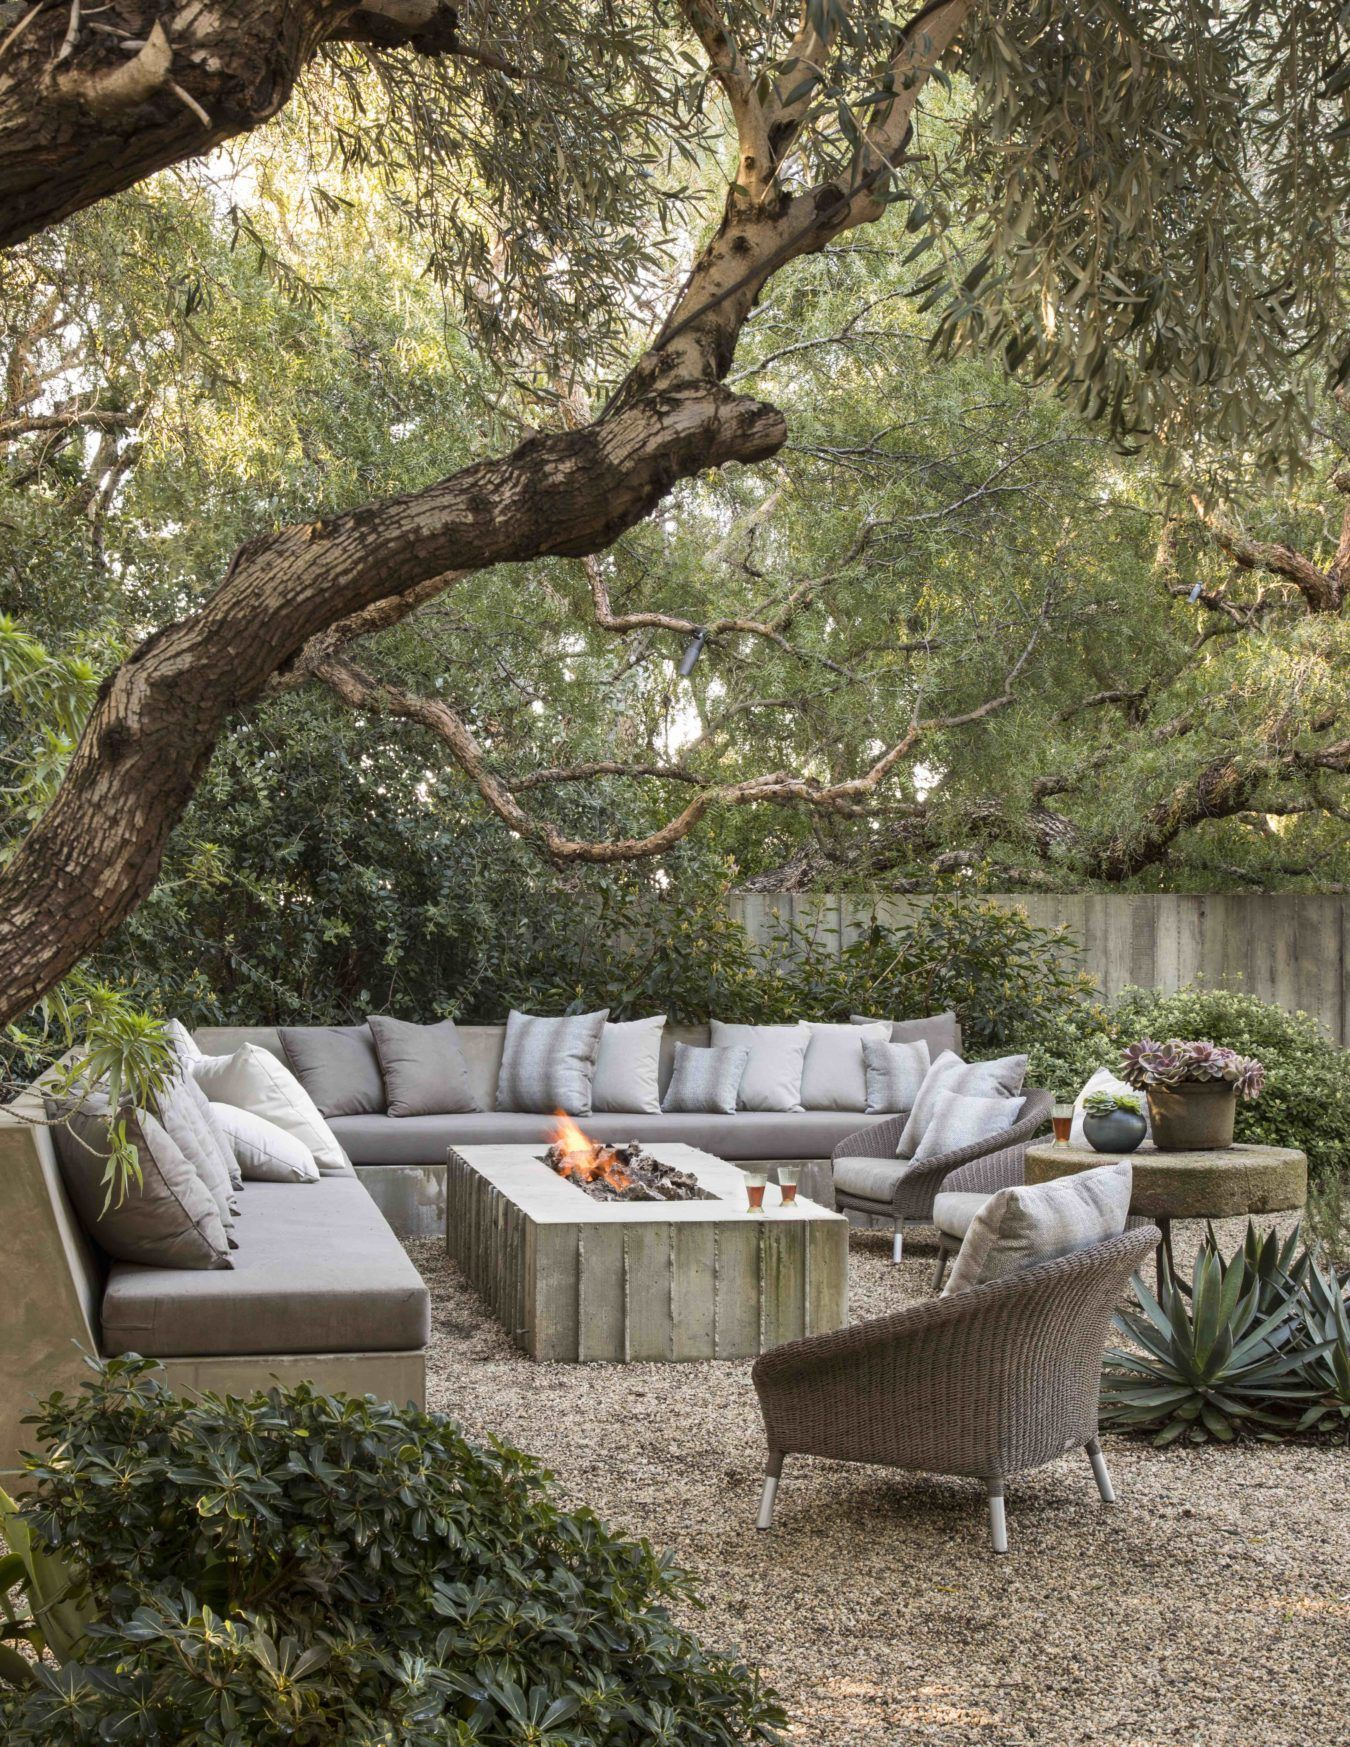 Landscape Architect Scott Shrader Shares His Garden Design Philosophy And His Ne Archit In 2020 Outdoor Rooms Outdoor Fireplace Backyard